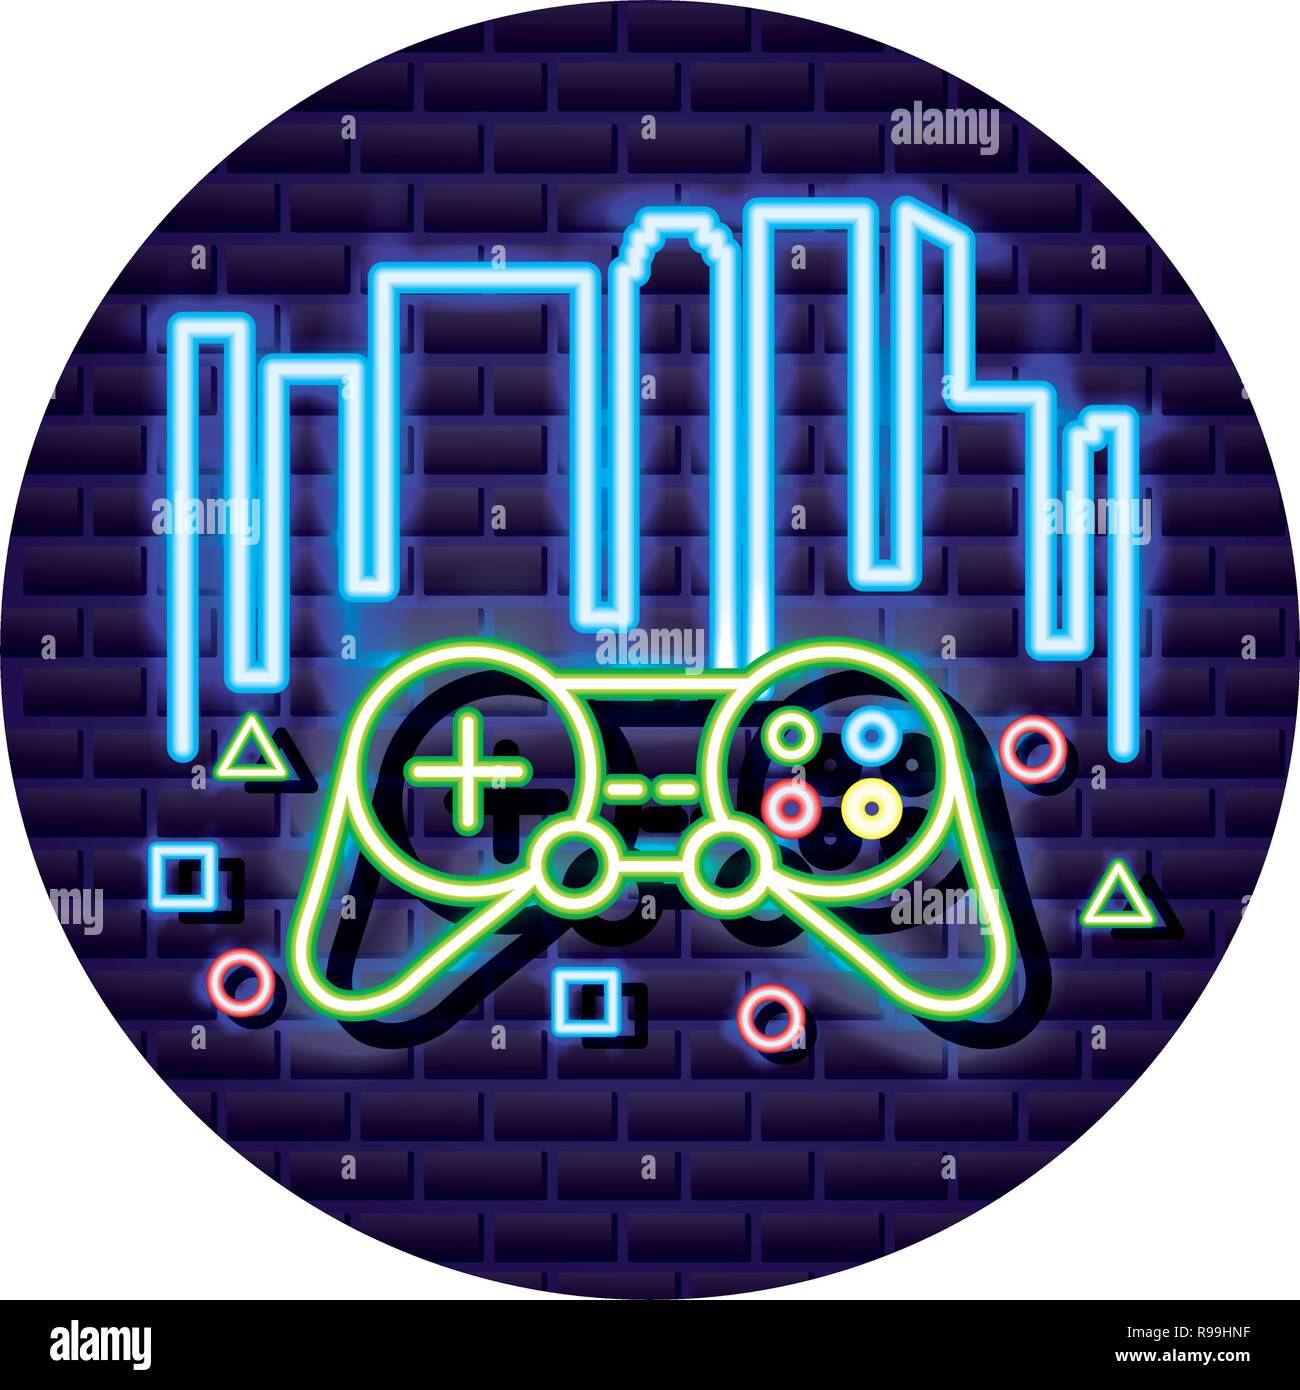 Controller Device Neon Video Game Vector Illustration Stock Vector Image Art Alamy